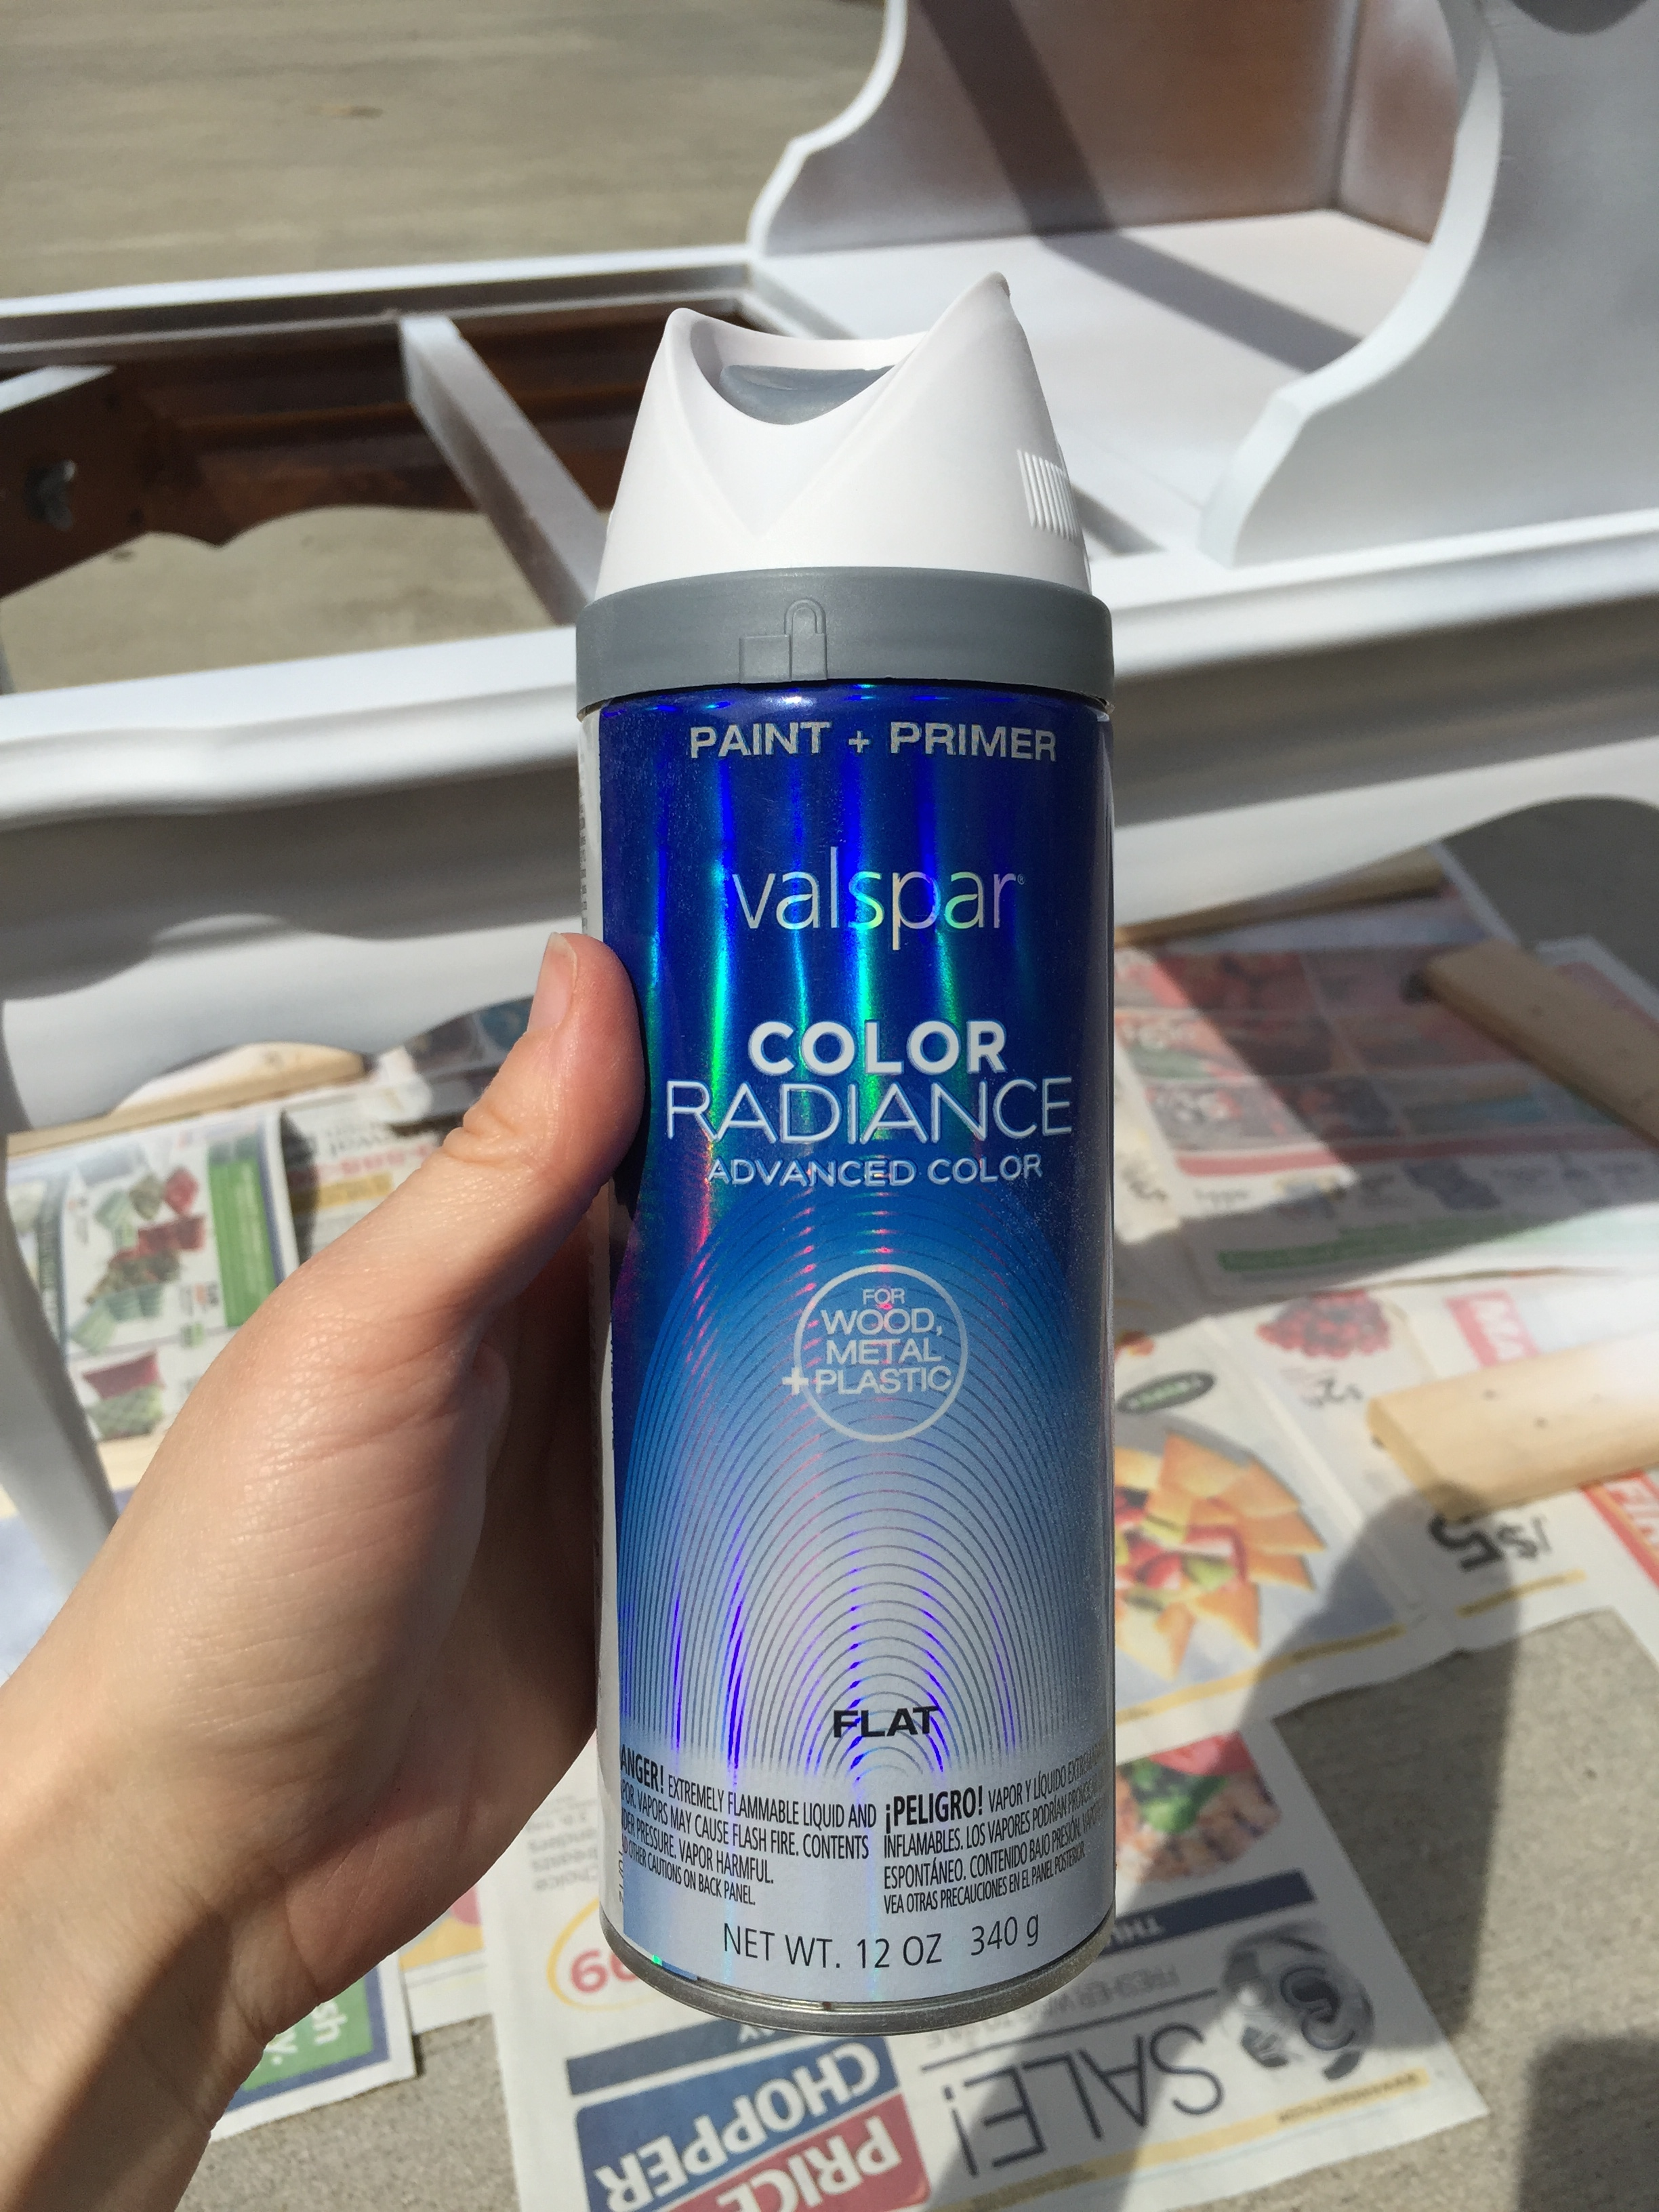 Valspar Color Radiance Spray Paint Part - 28: I Headed Out To Loweu0027s This Morning To Grab Some Spray Paint. I Decided To  Go With Valspar Color Radiance U2013 Flat U2013 In White. This Next Photo Is One Of  My ...